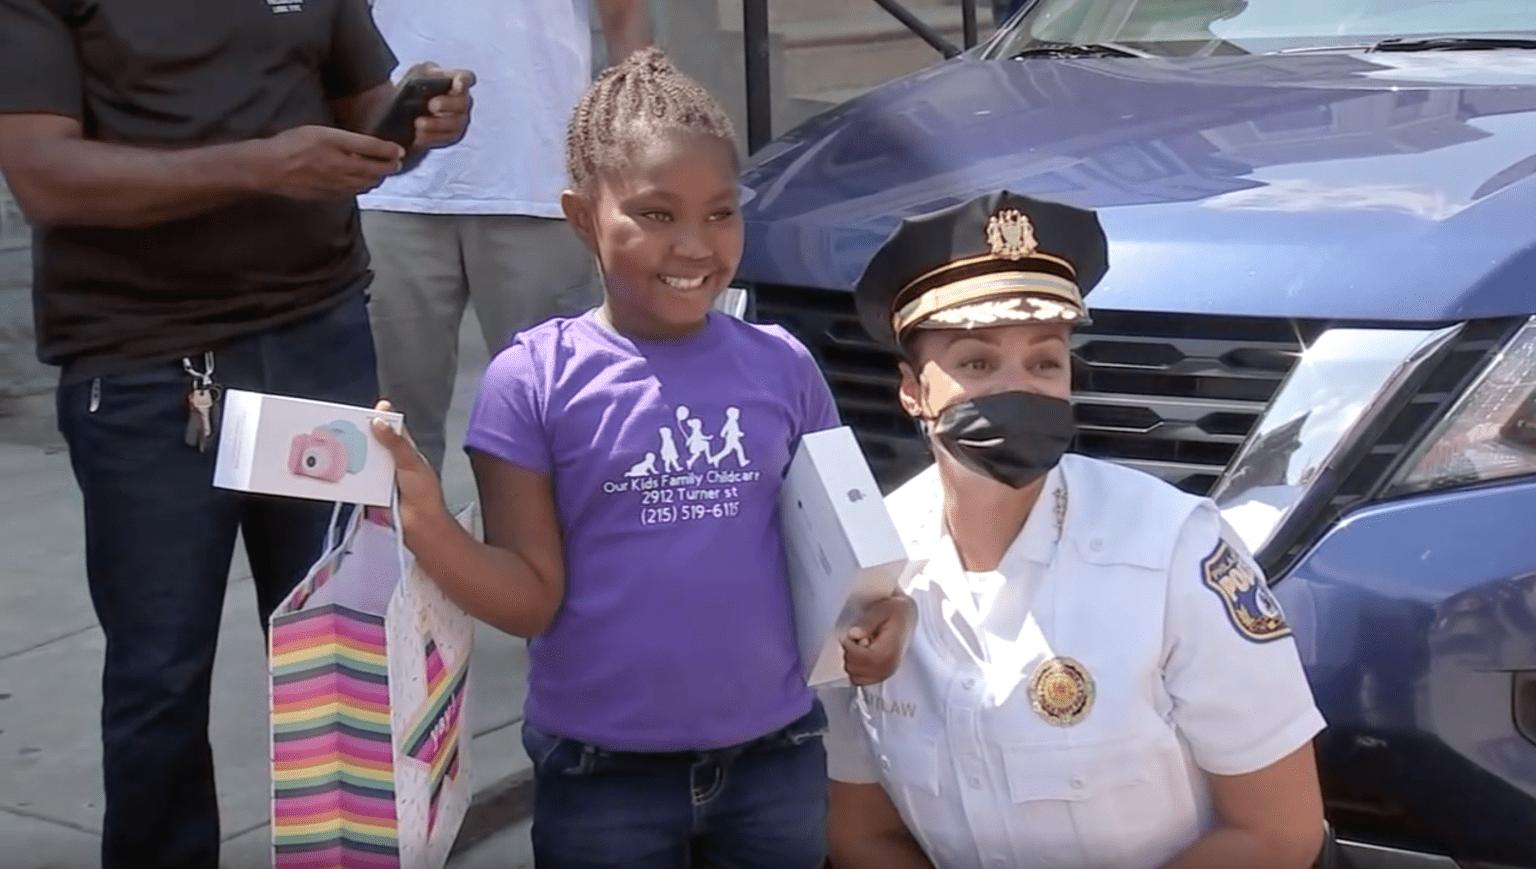 Police officers, local news anchor, community bring caravan of surprises to little girl, 6, who was shot